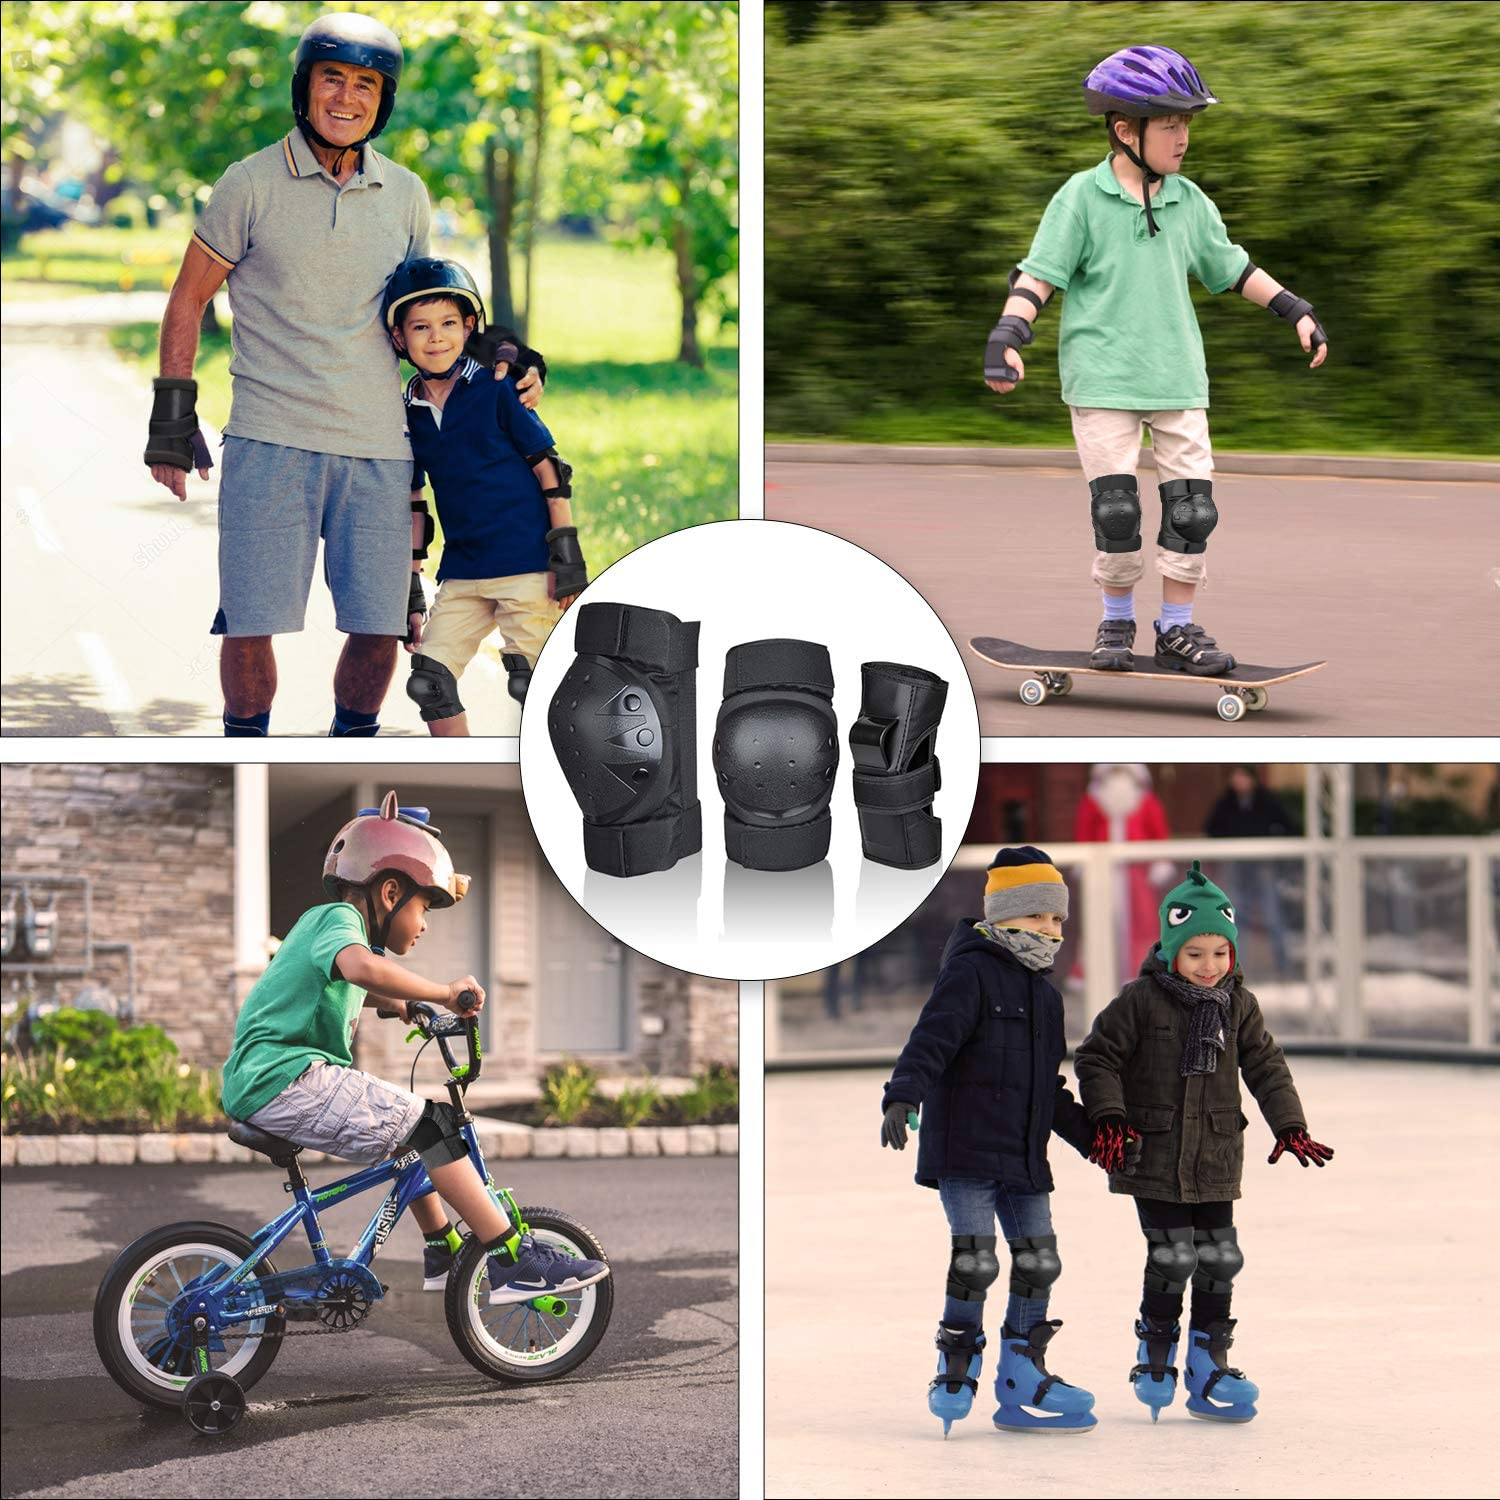 Deacroy Adult//Child Knee Pads Wrist Guards Elbow Pads 6 in 1 Protective Gear Set for Volleyball Inline Roller Skating Skateboarding Cycling Scooter Ski